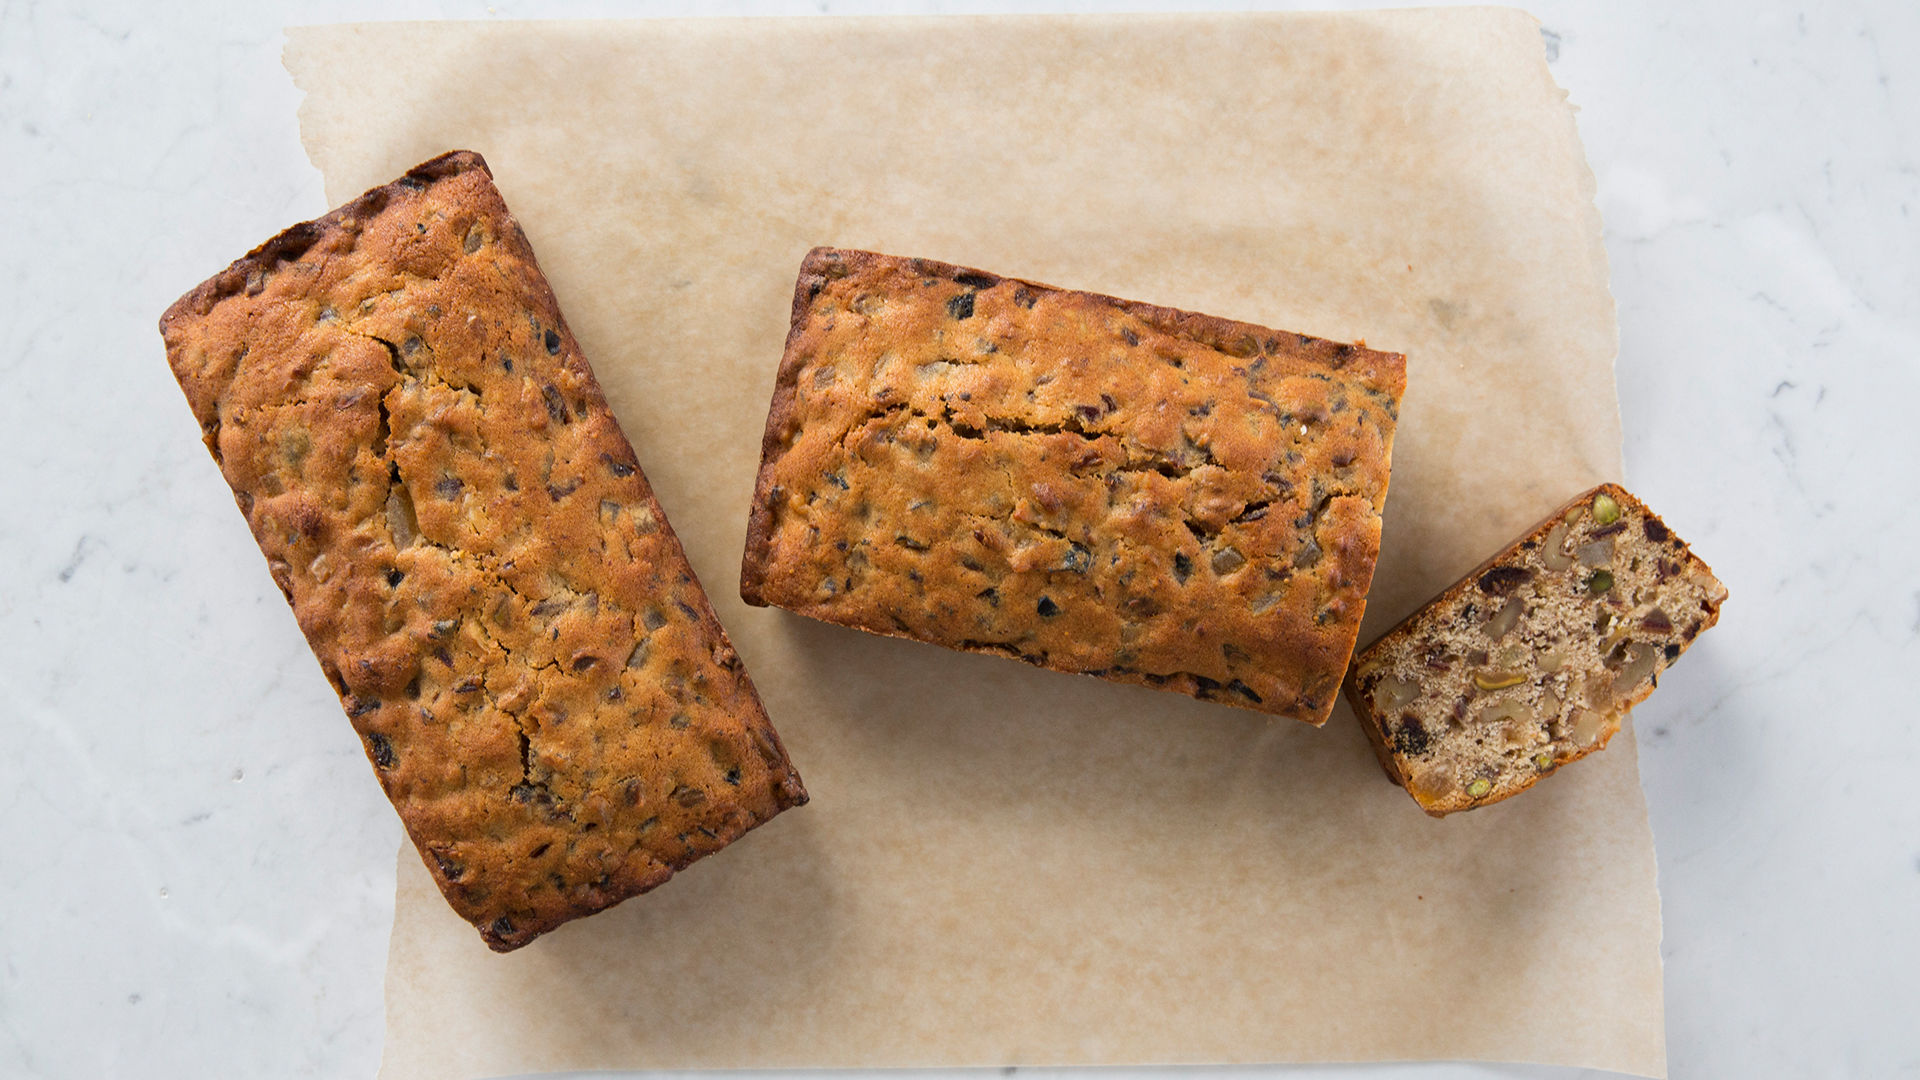 What's in That Leftover Holiday Fruitcake on Your Counter?